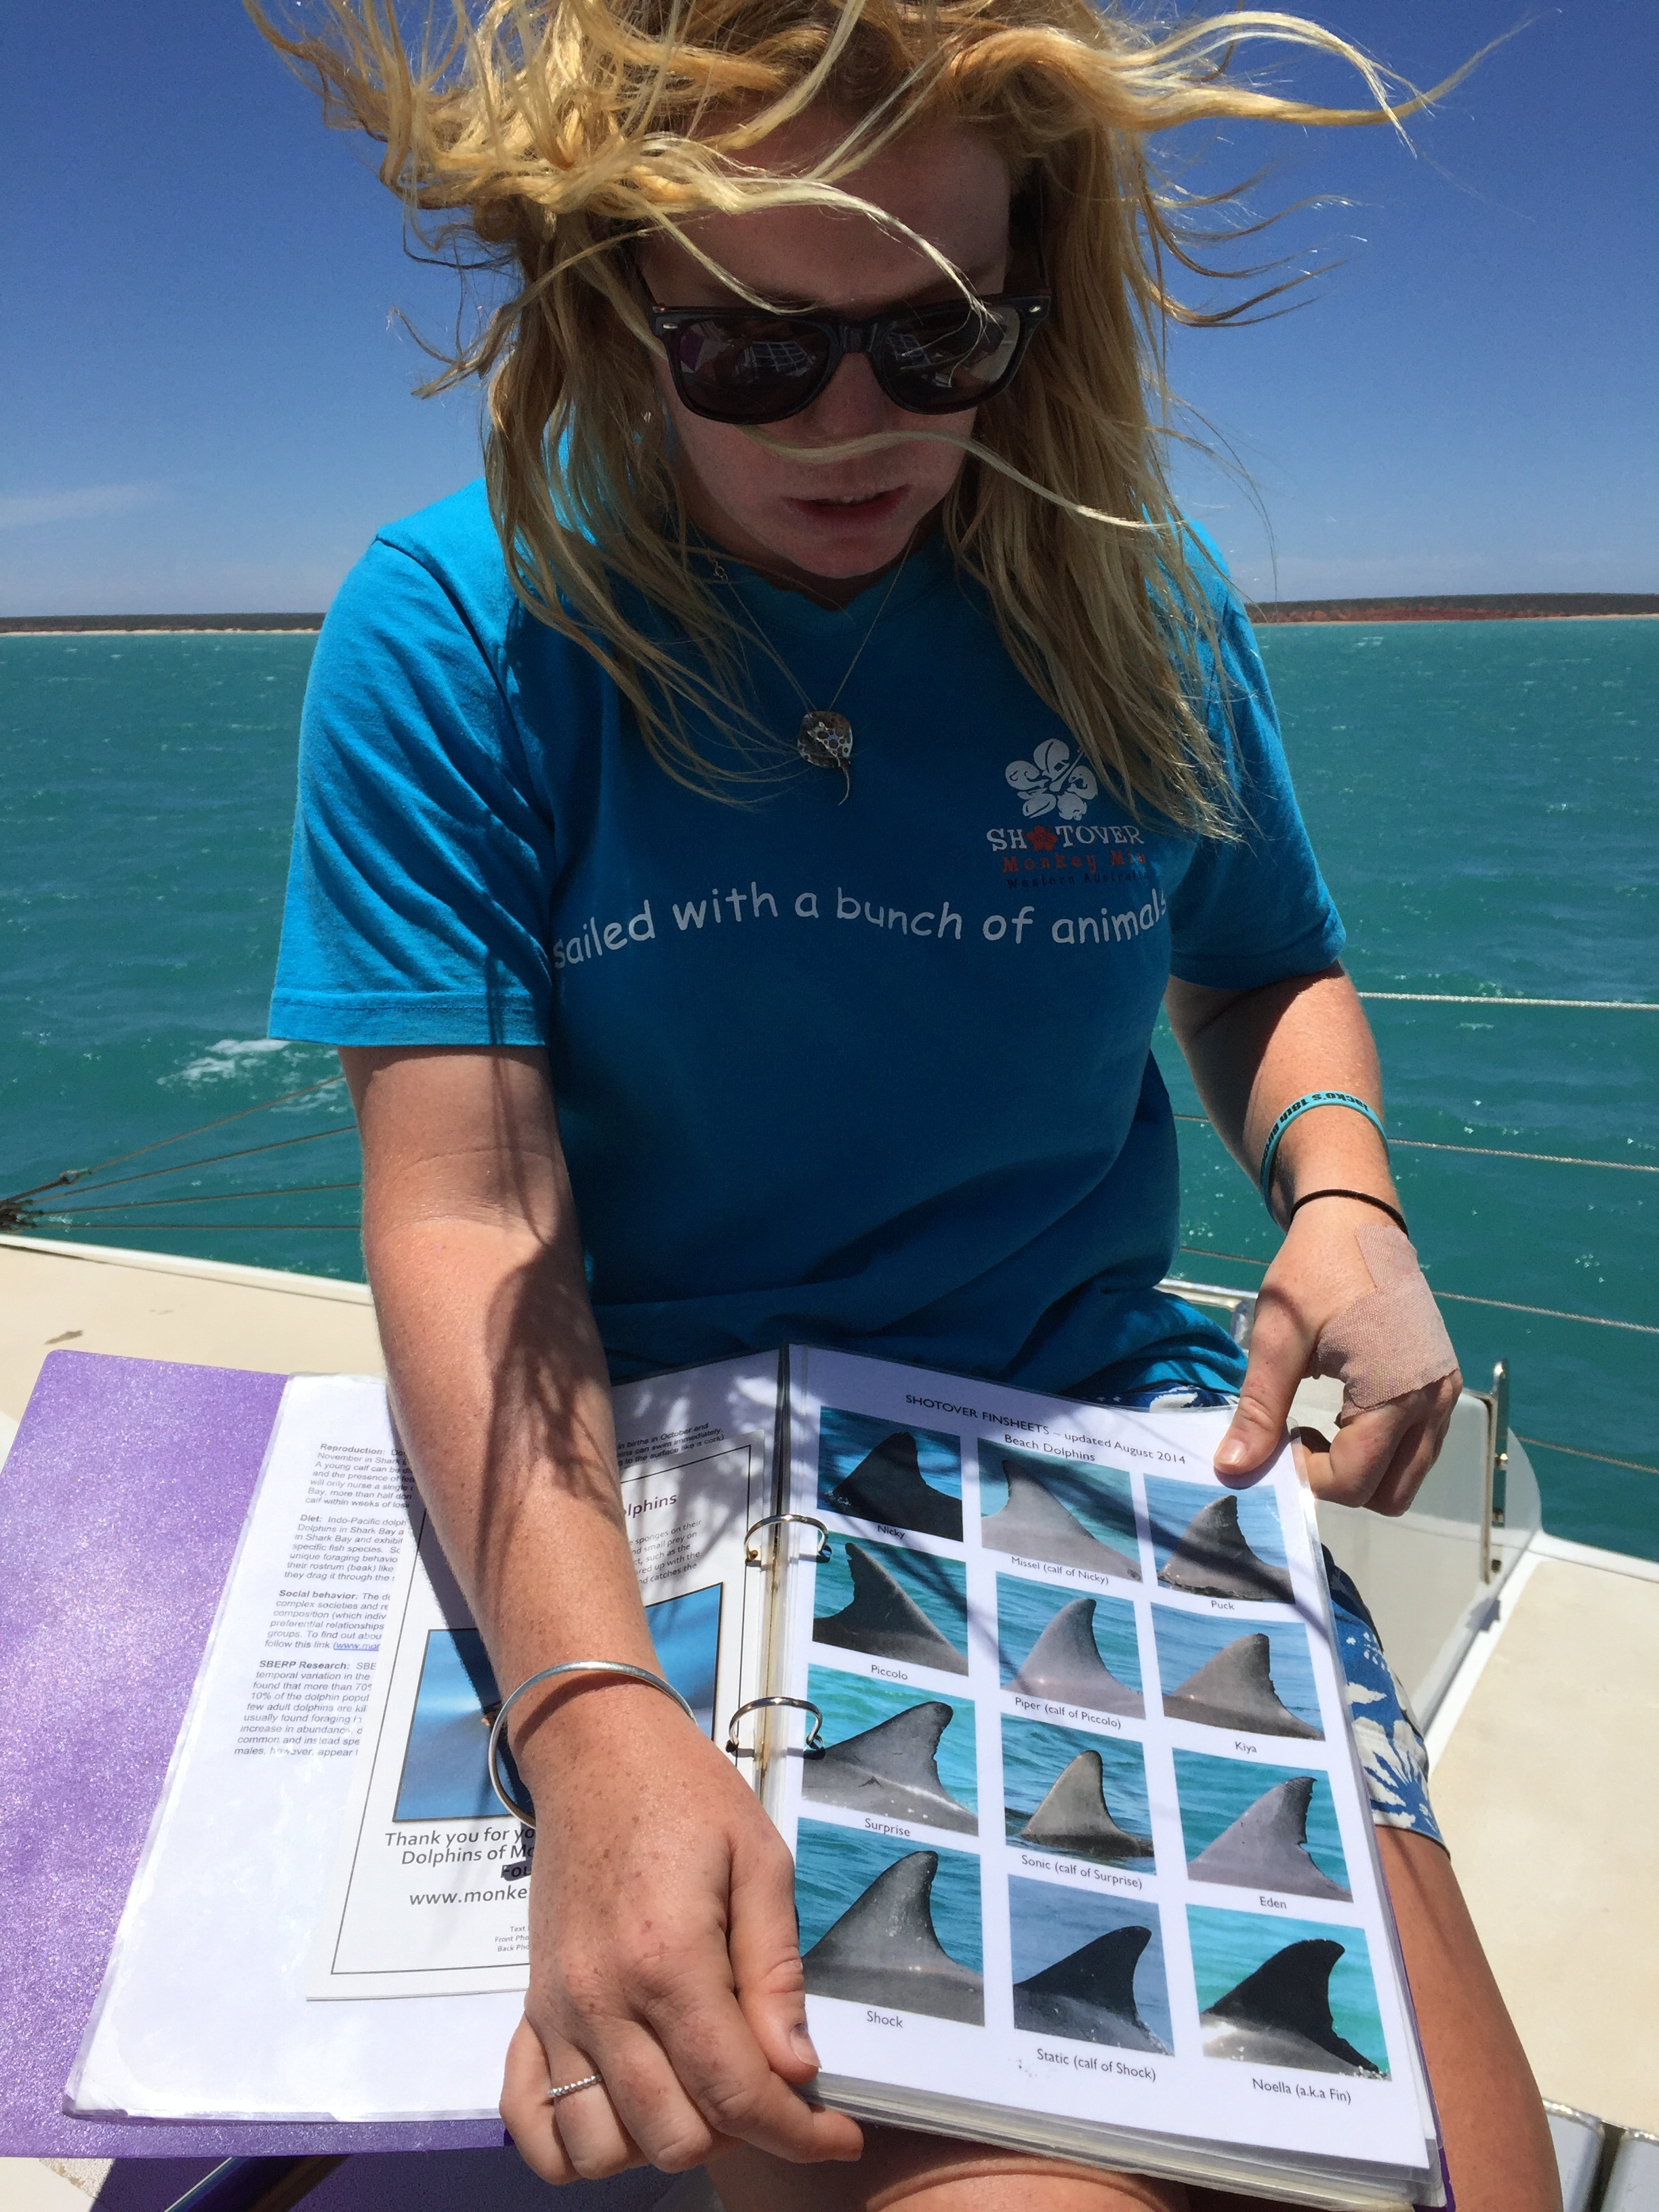 First mate Kate, aboard Shotover, a 60 foot catamaran, knows all the resident Shark Bay dolphins by name and by the unique shapes and scars on their dorsal fins.